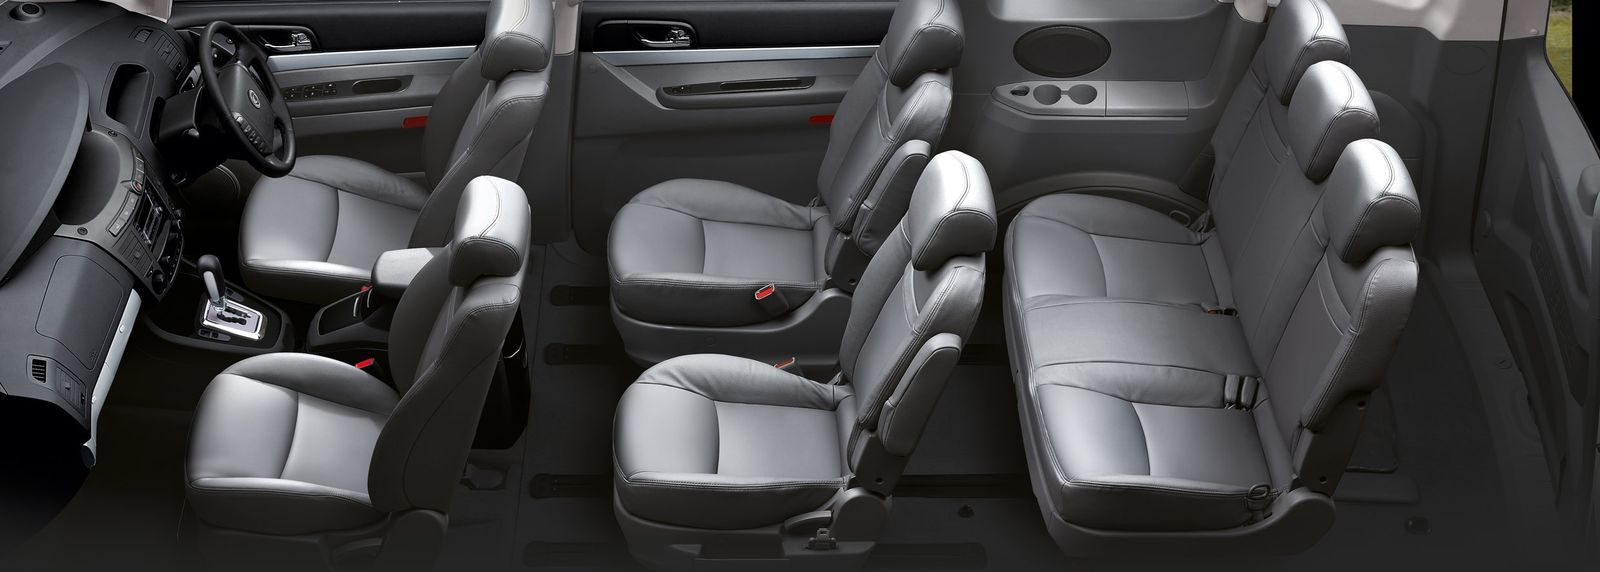 boot bargains cars with the most space for the least cash carwow. Black Bedroom Furniture Sets. Home Design Ideas